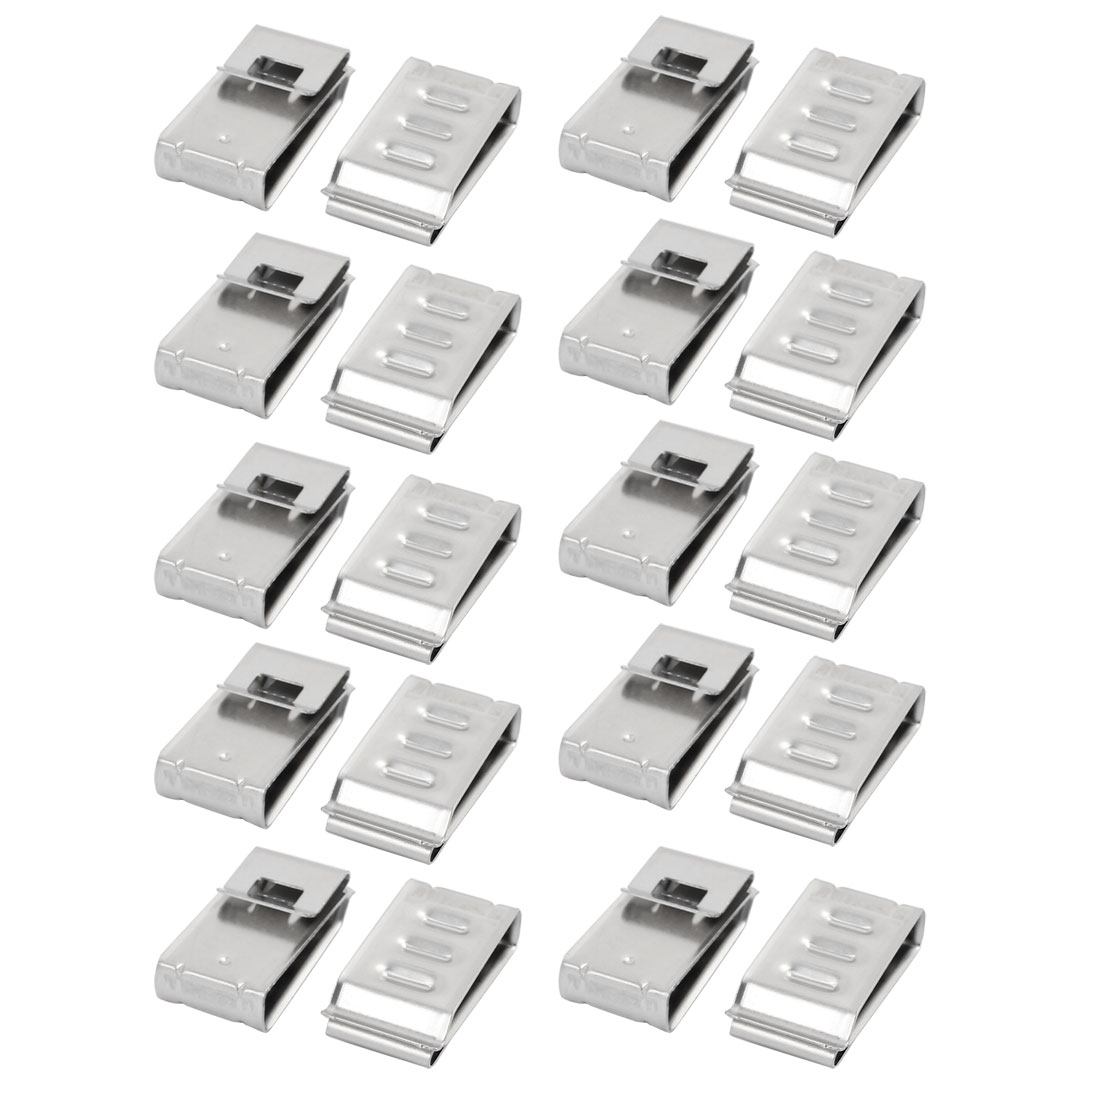 20Pcs Solar Mounting Stainless Steel Flat Cable Clamp Fit for 4 x 5mm Dia Cable